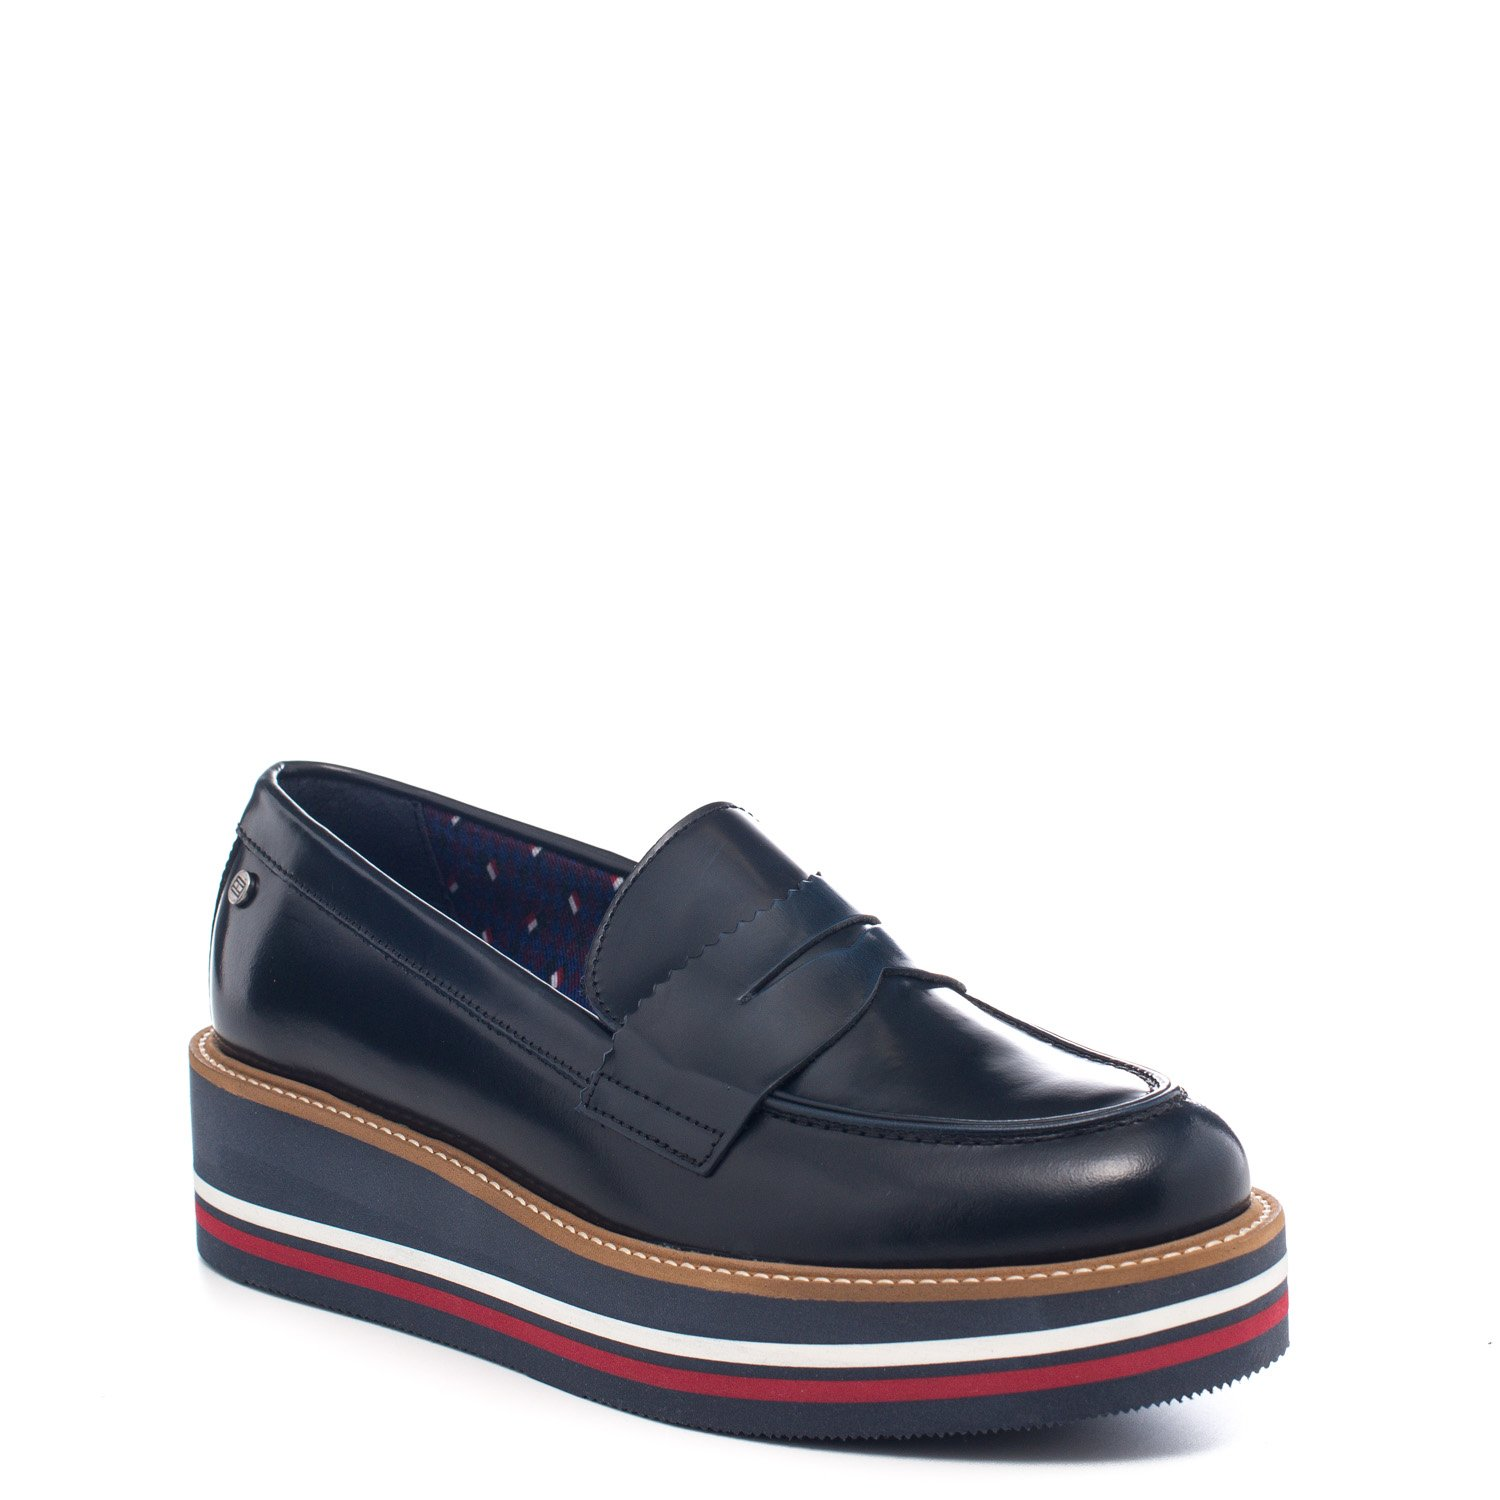 c5e69ba4f0992 Tommy Hilfiger Women s Loafer Flats blue Midnight blue Size  4   Amazon.co.uk  Shoes   Bags